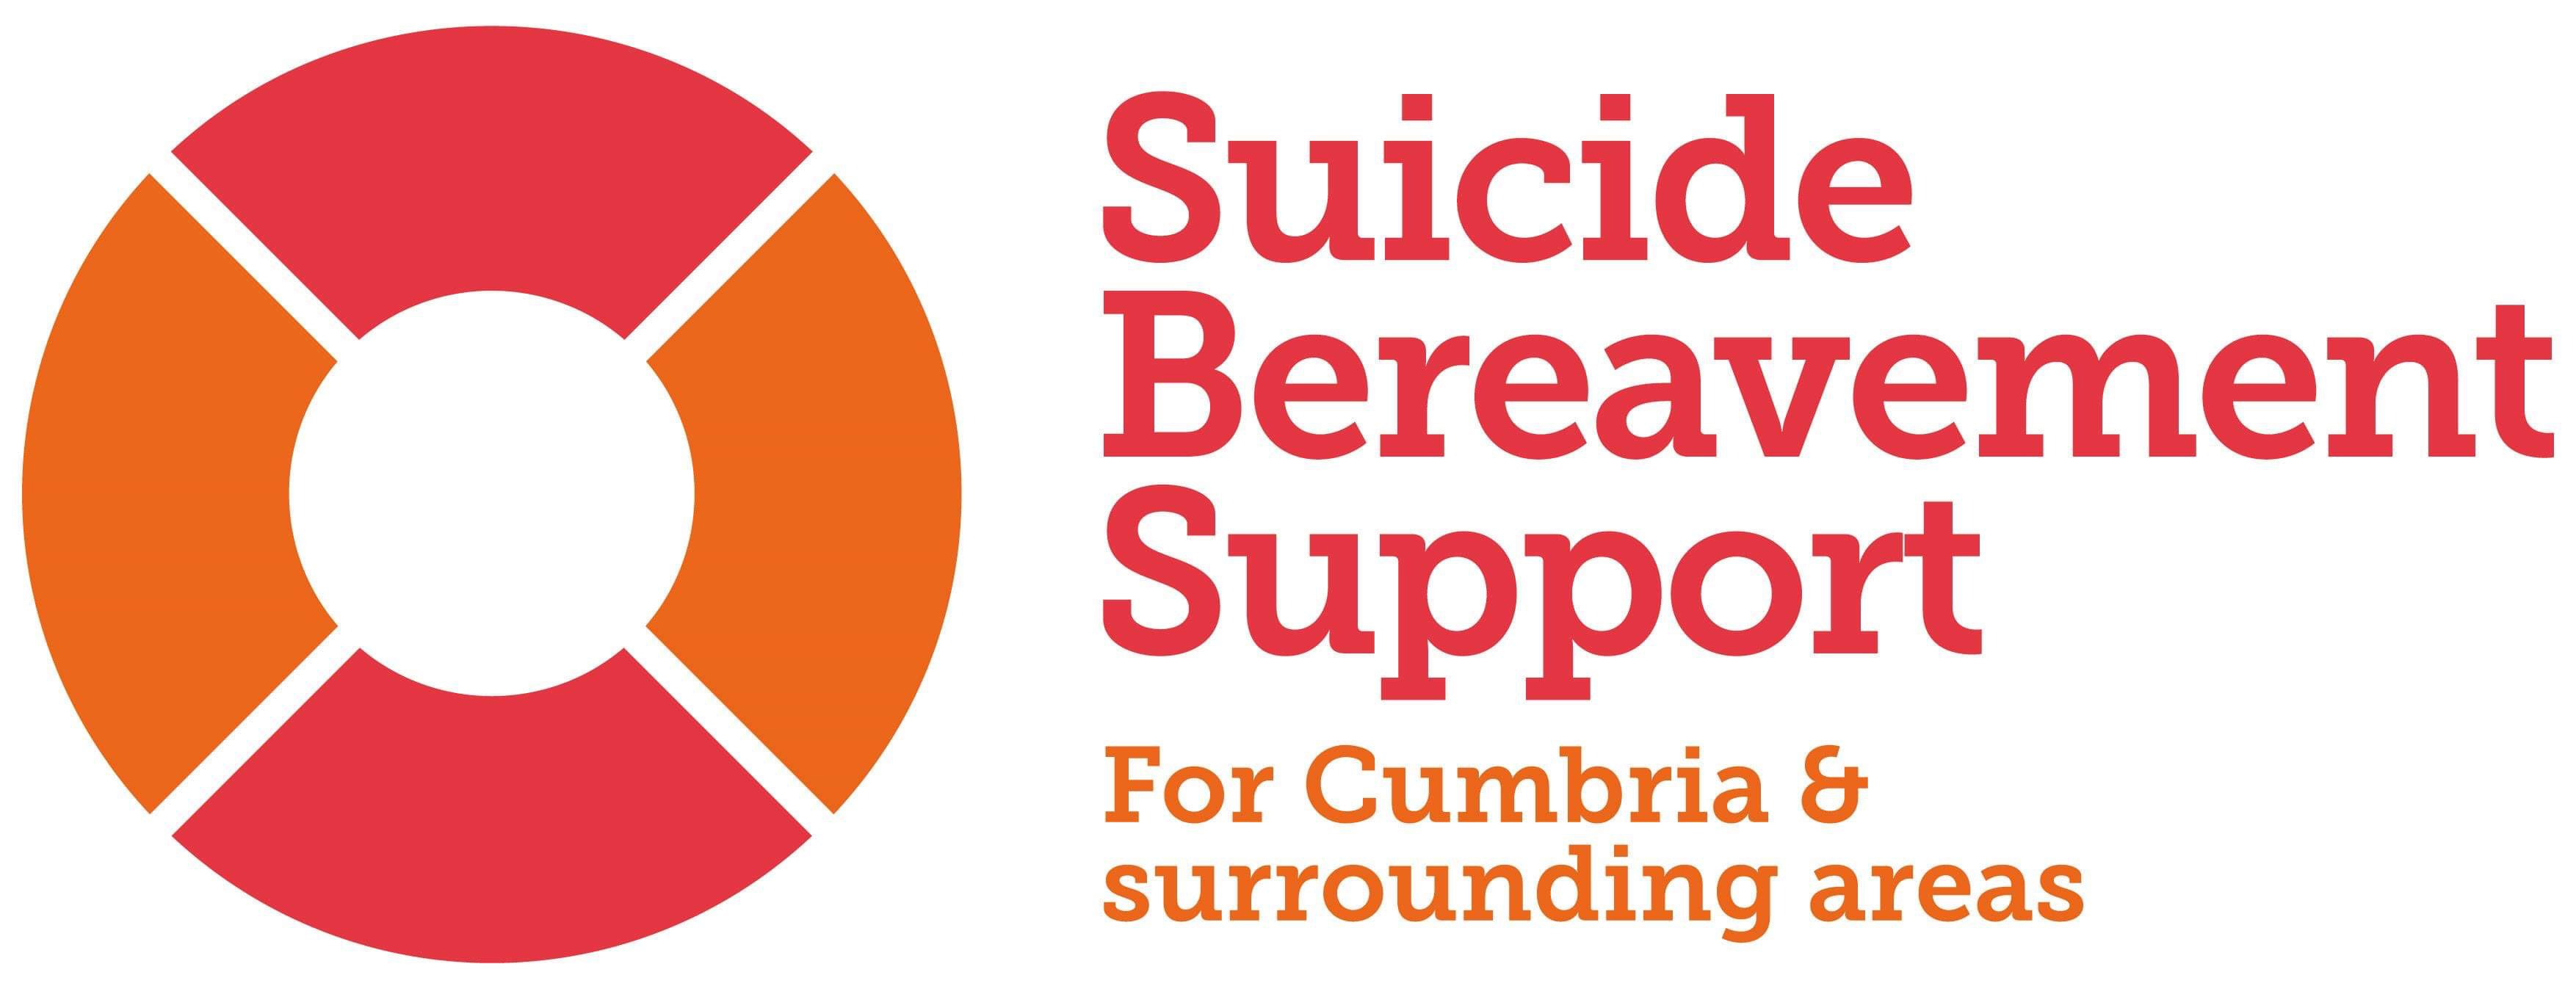 Suicide Bereavement Support logo